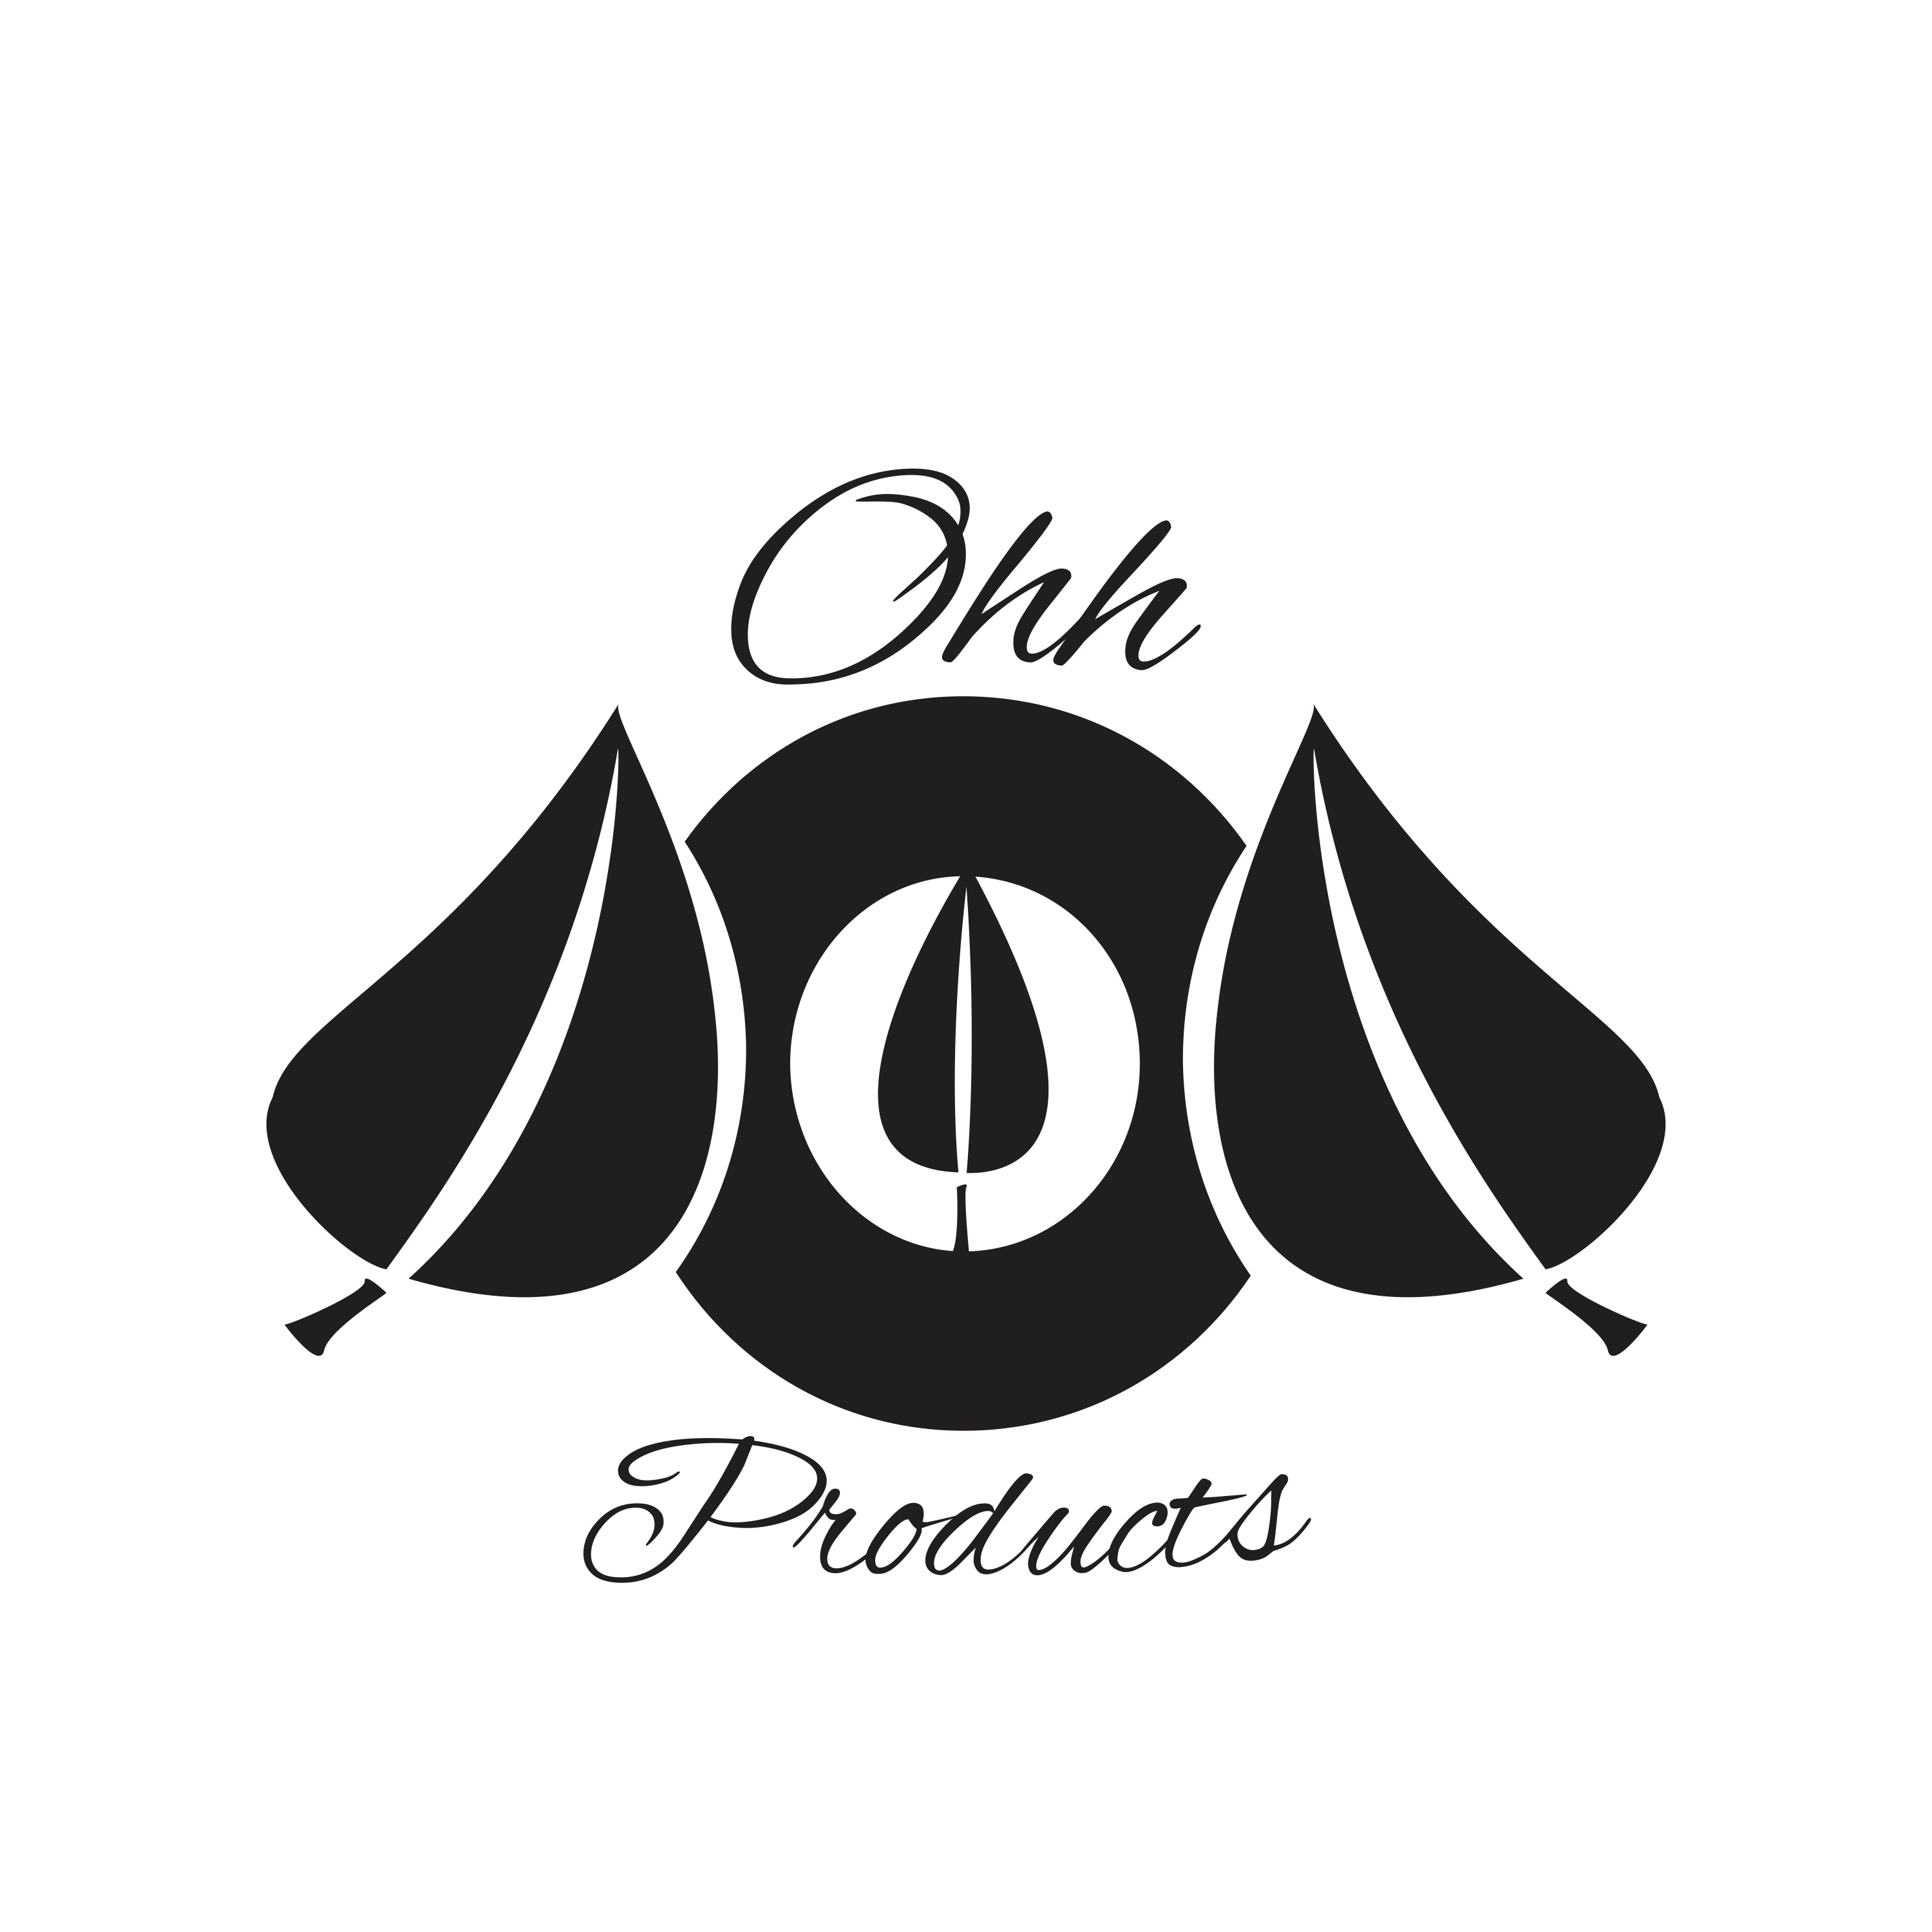 OhhProducts